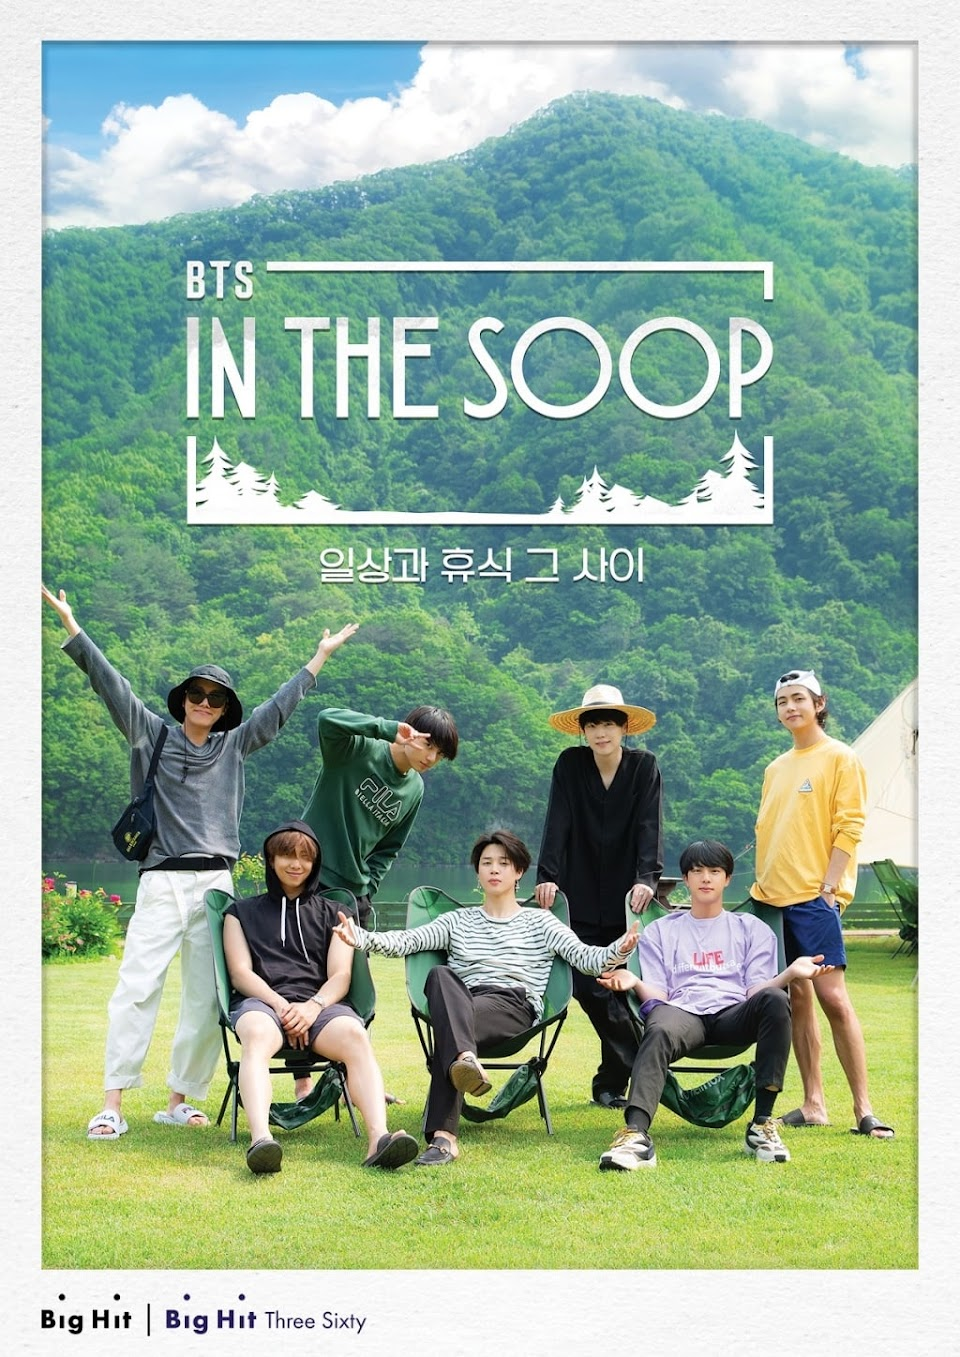 bts-in-the-soop